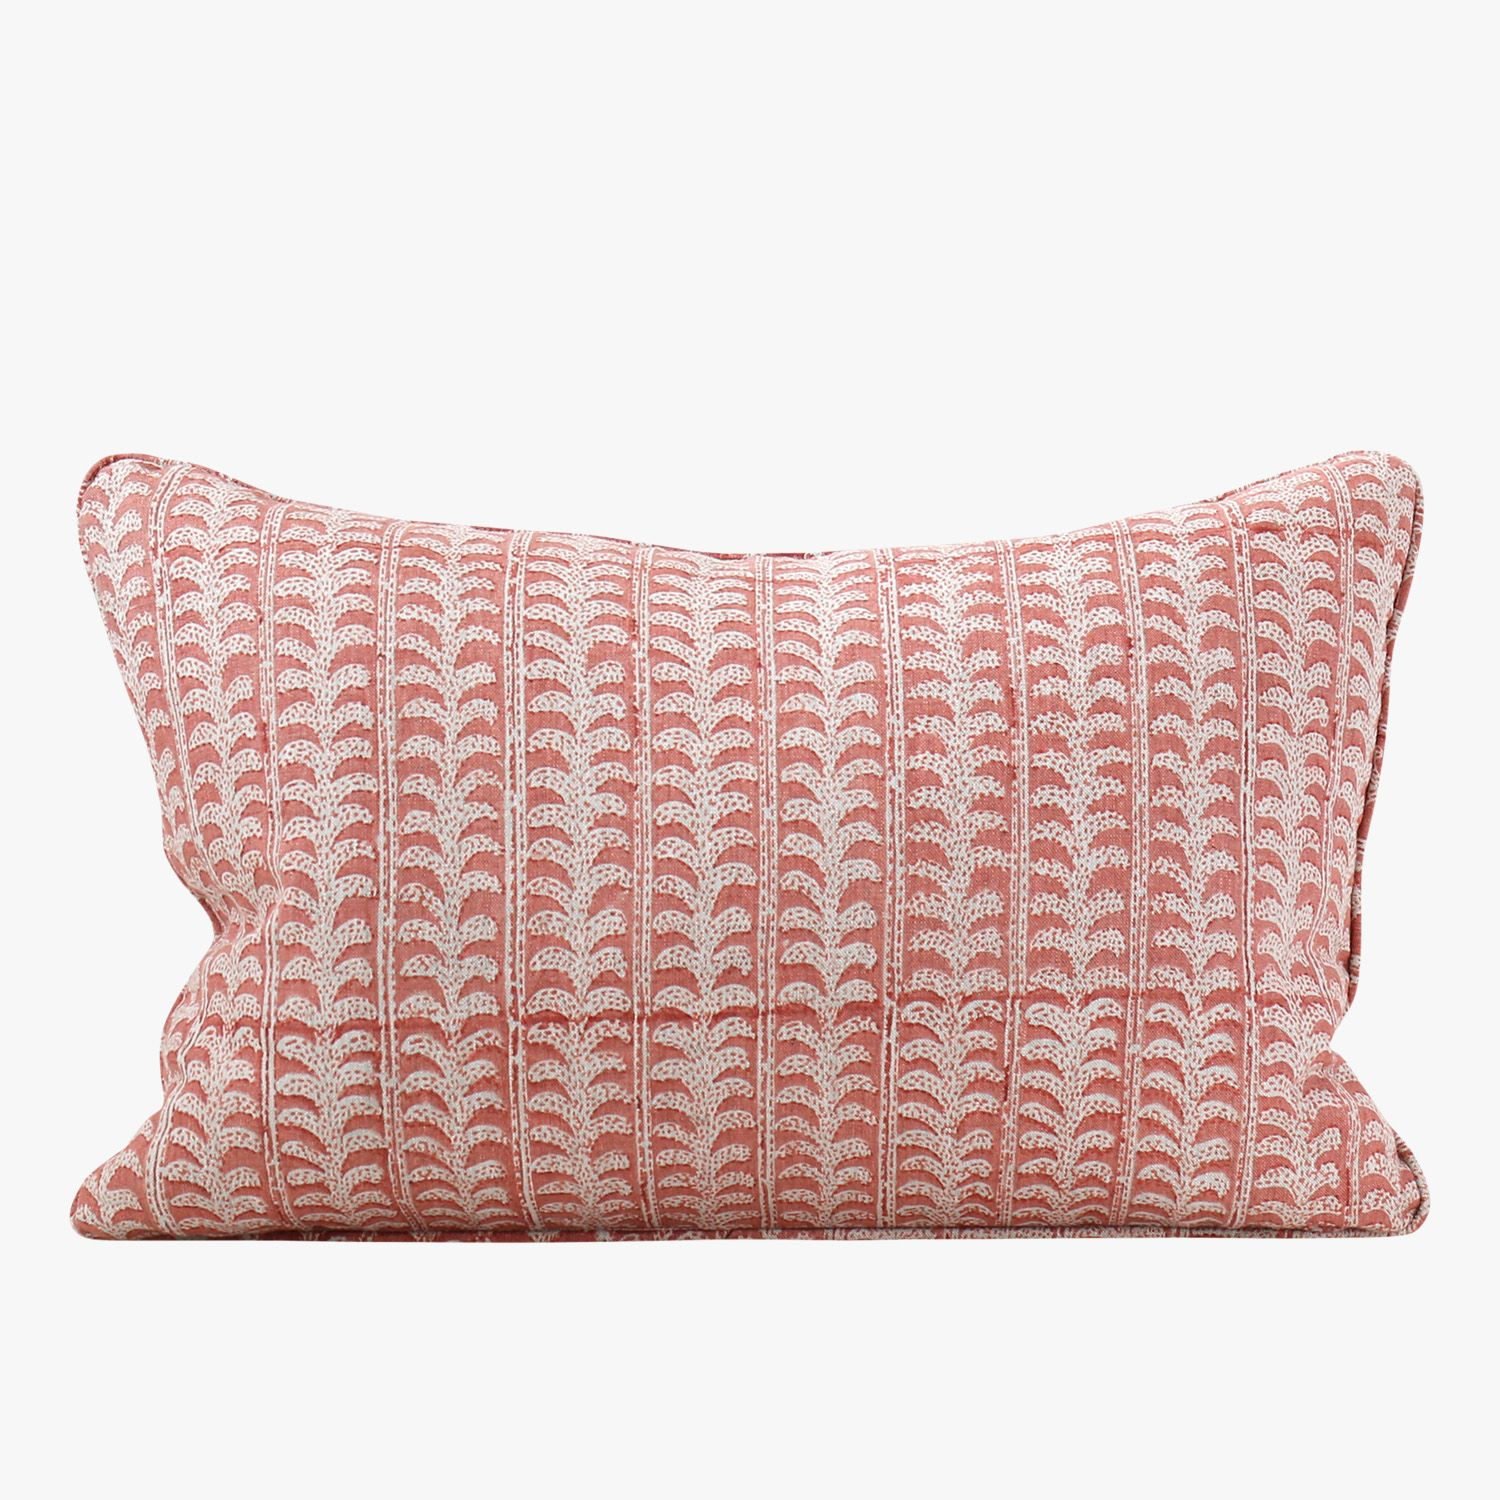 Our Luxor Guava Lumbar Pillow Cover From Walter G Is Inspired By